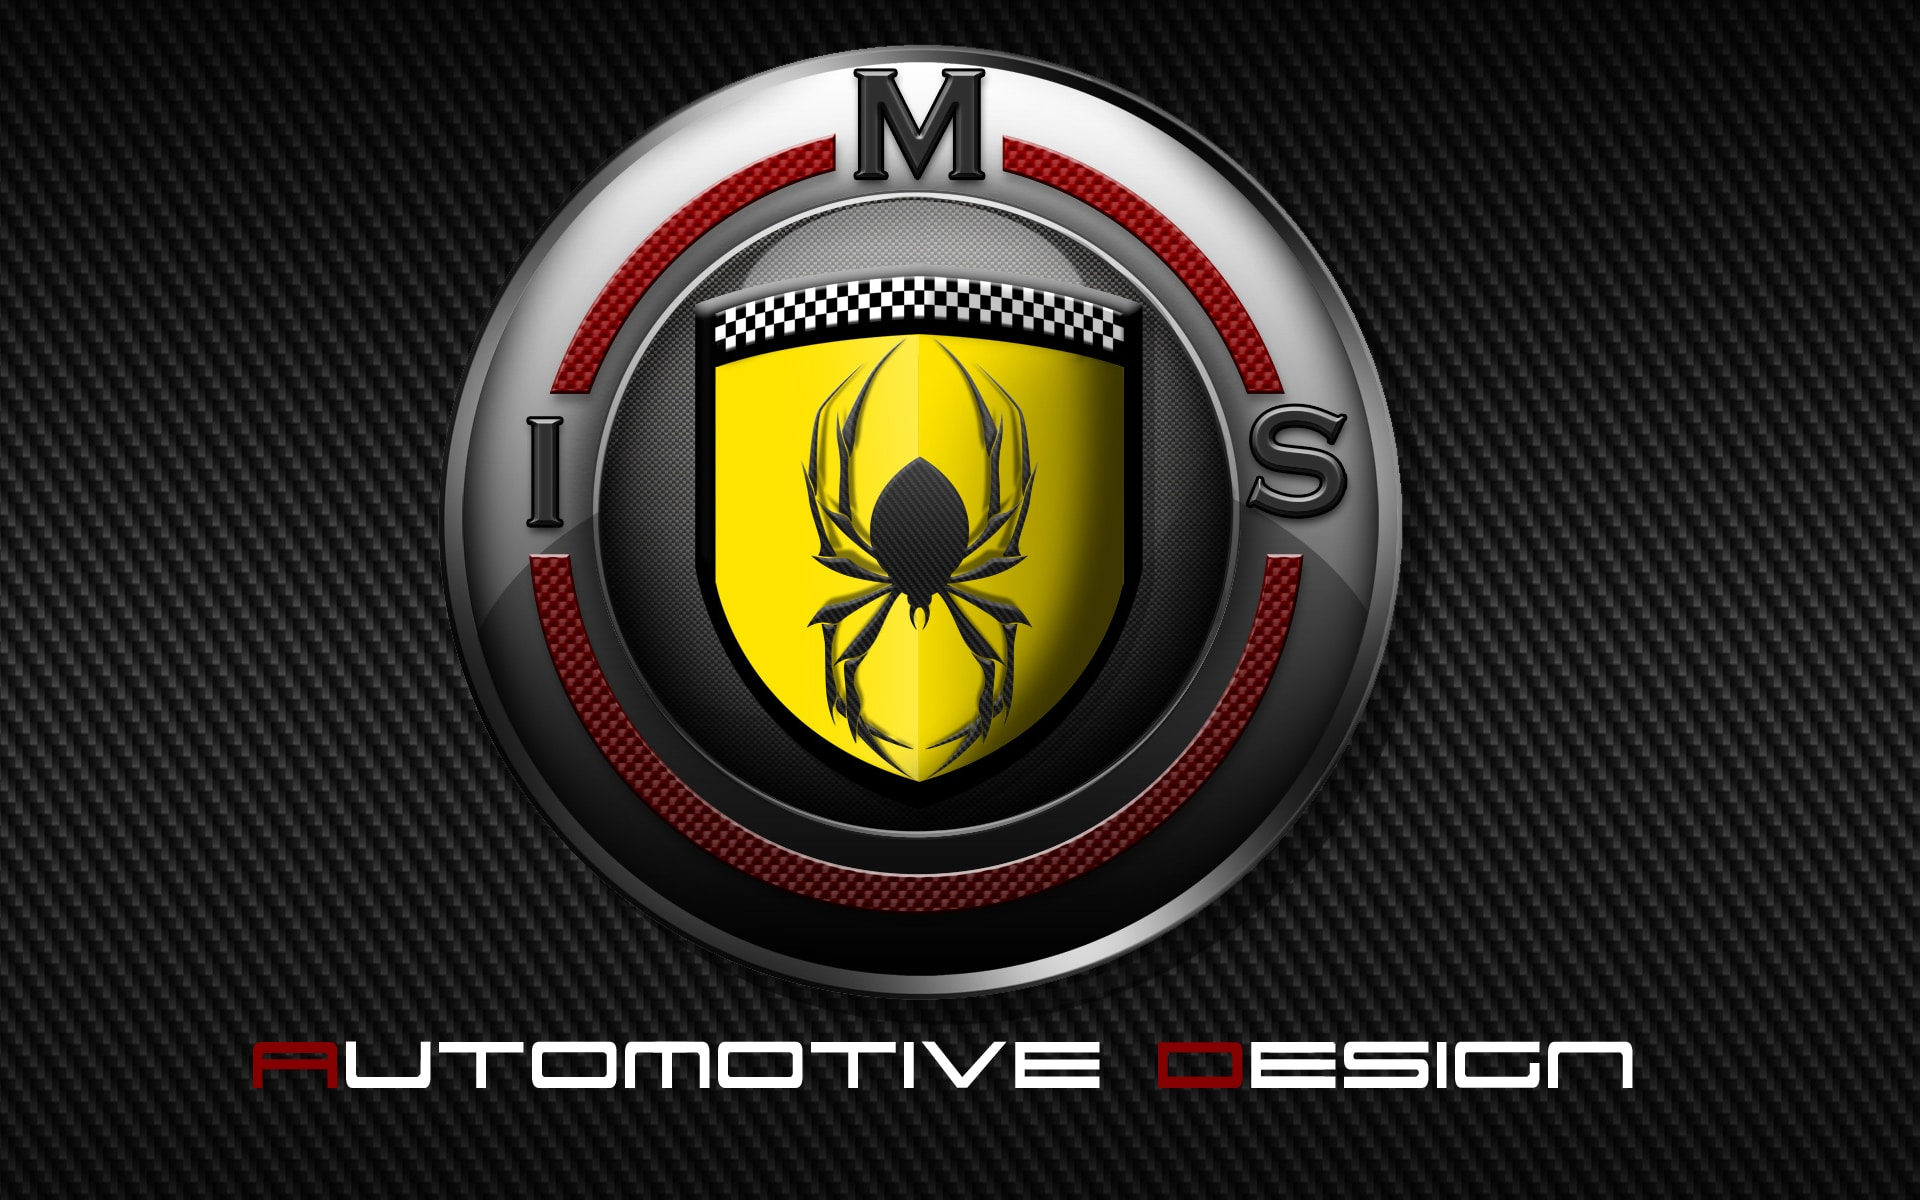 IMS Automotive Design